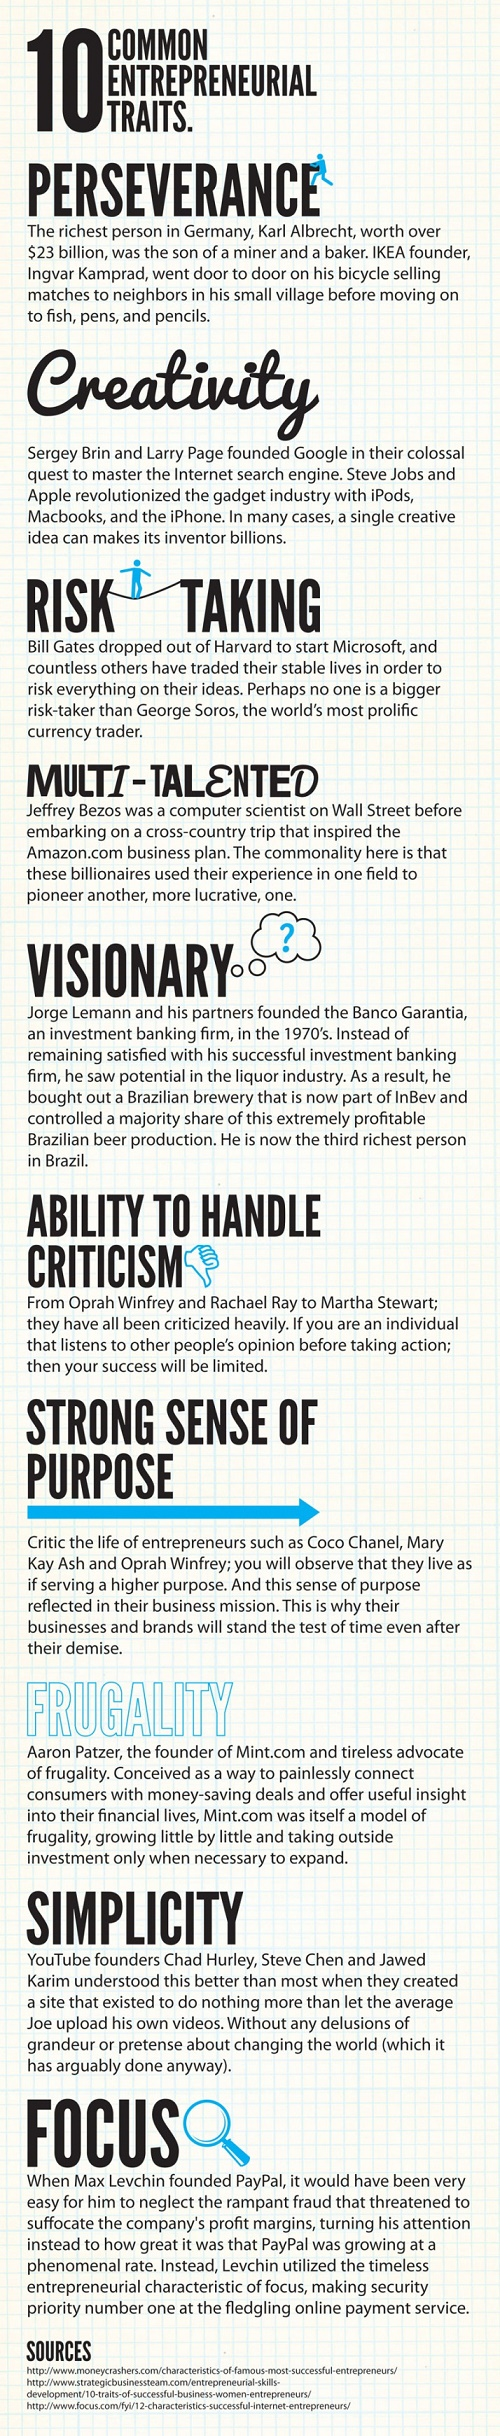 10 Personality Traits of Mega-Successful Entrepreneurs [Infographic